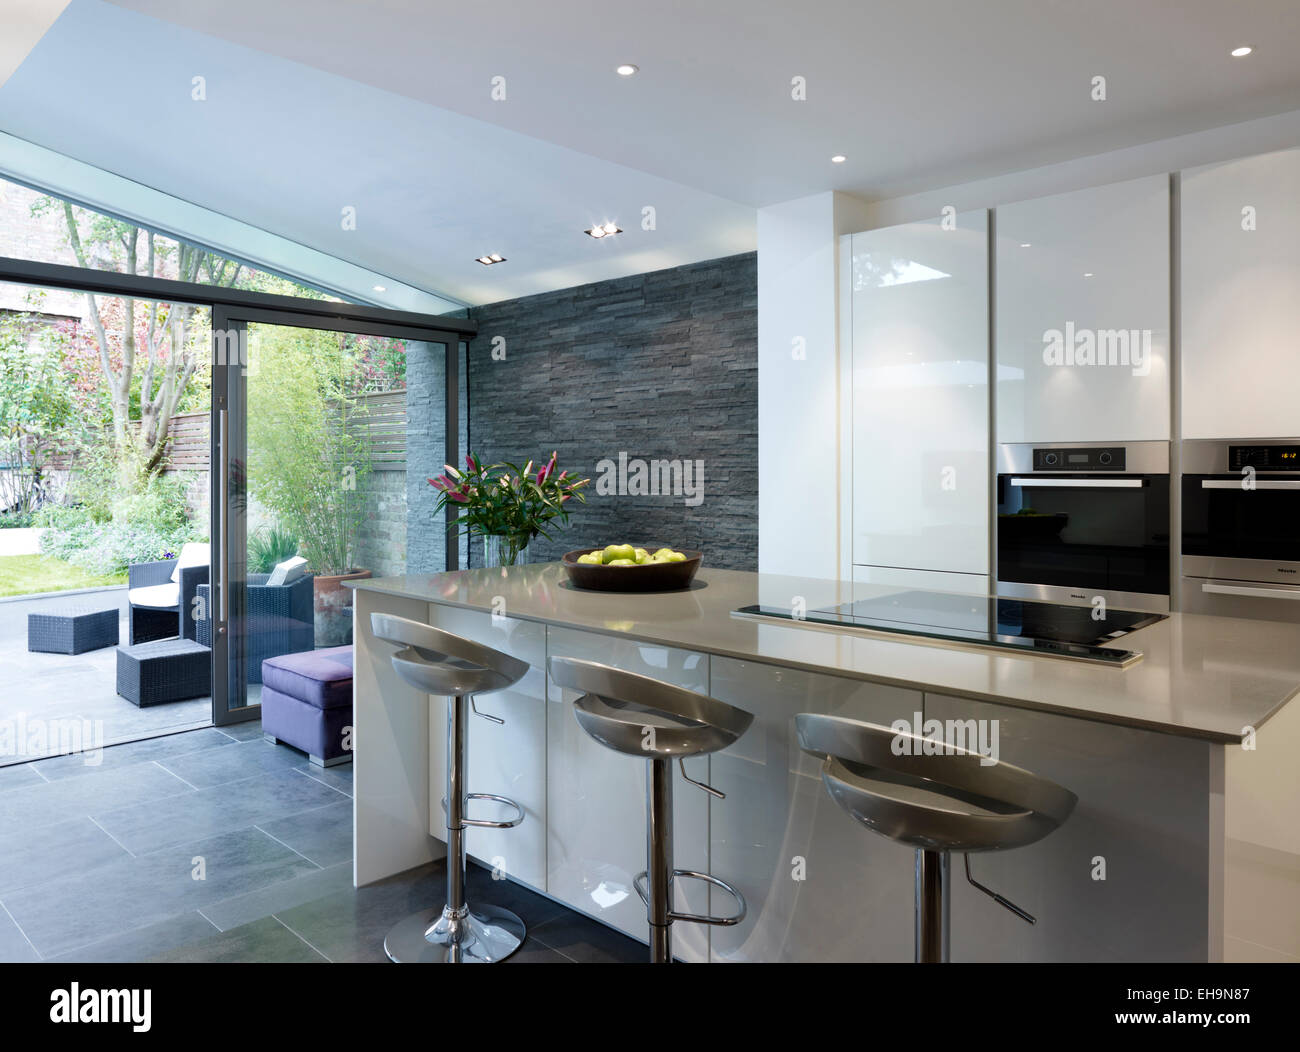 Living Room Stools Uk Breakfast Bar With Stools In Open Plan Kitchen And Living